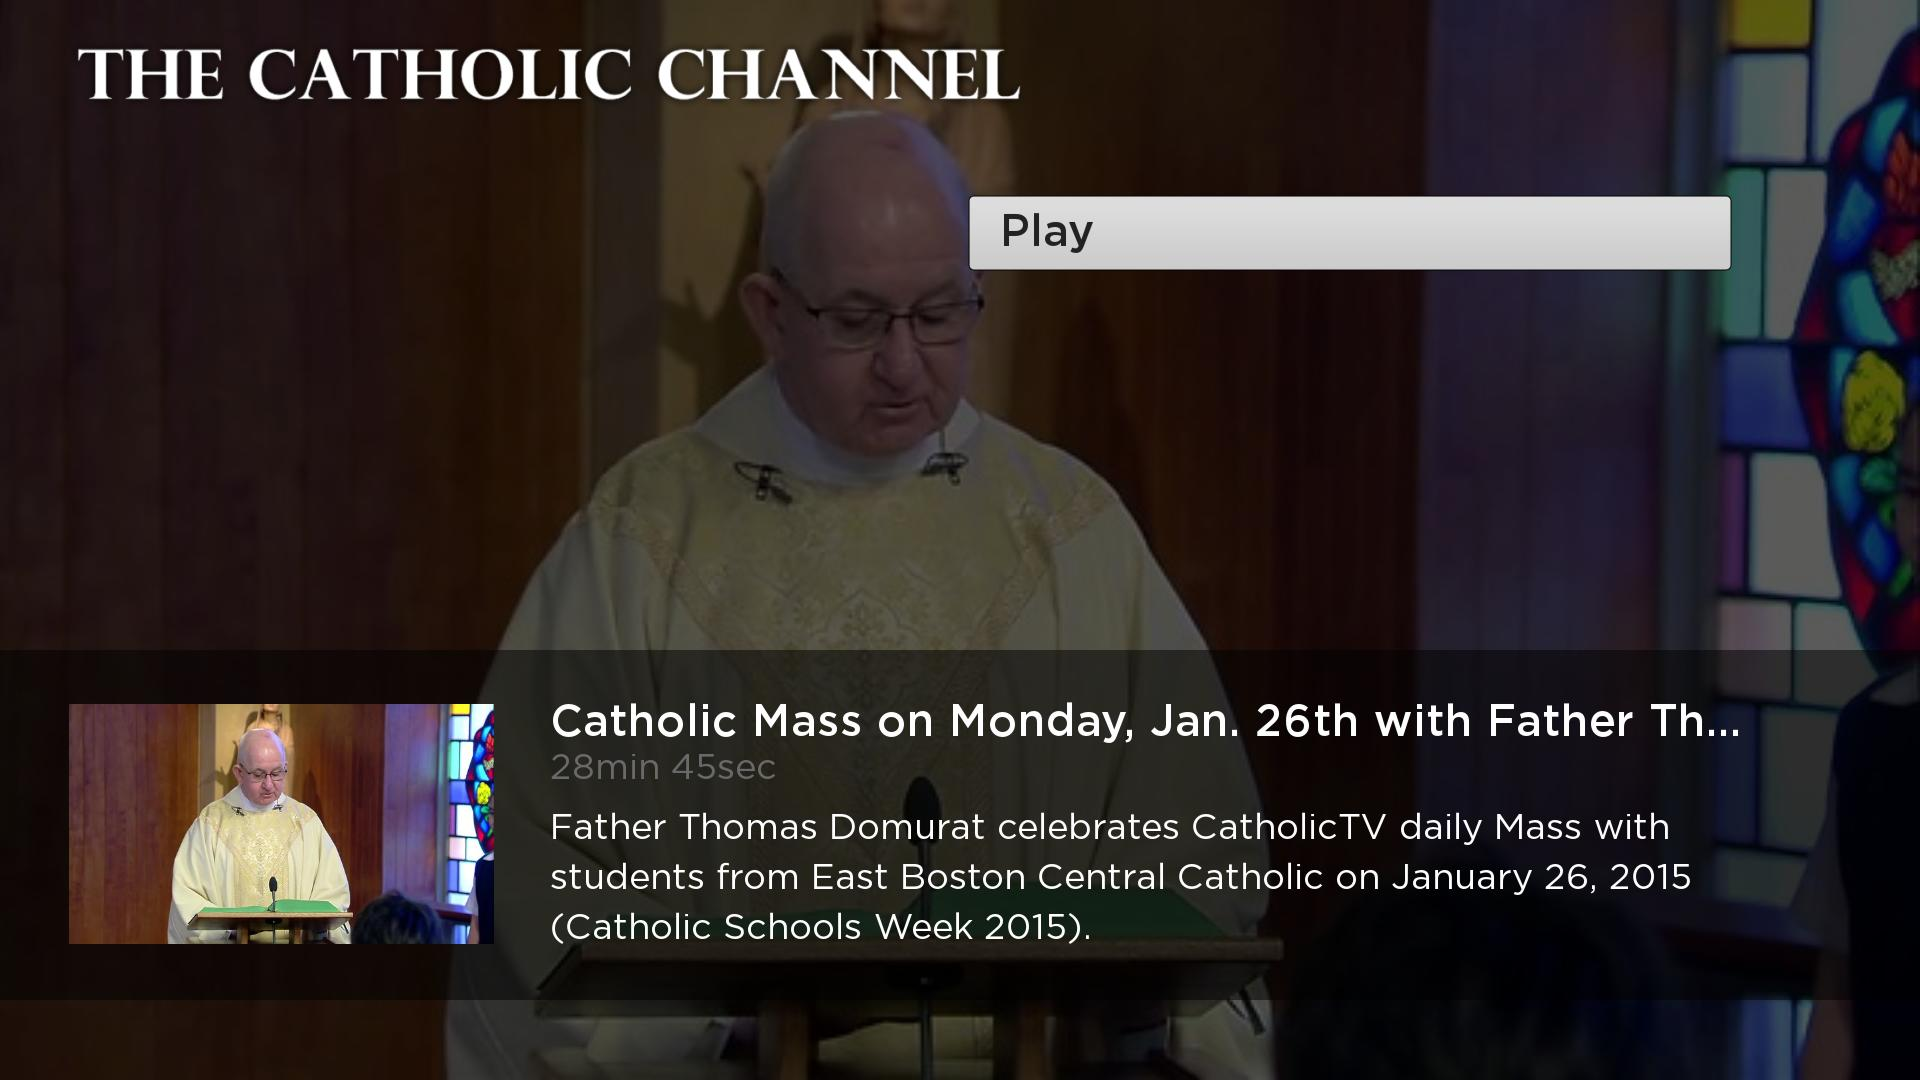 The Catholic Channel Screenshot 003